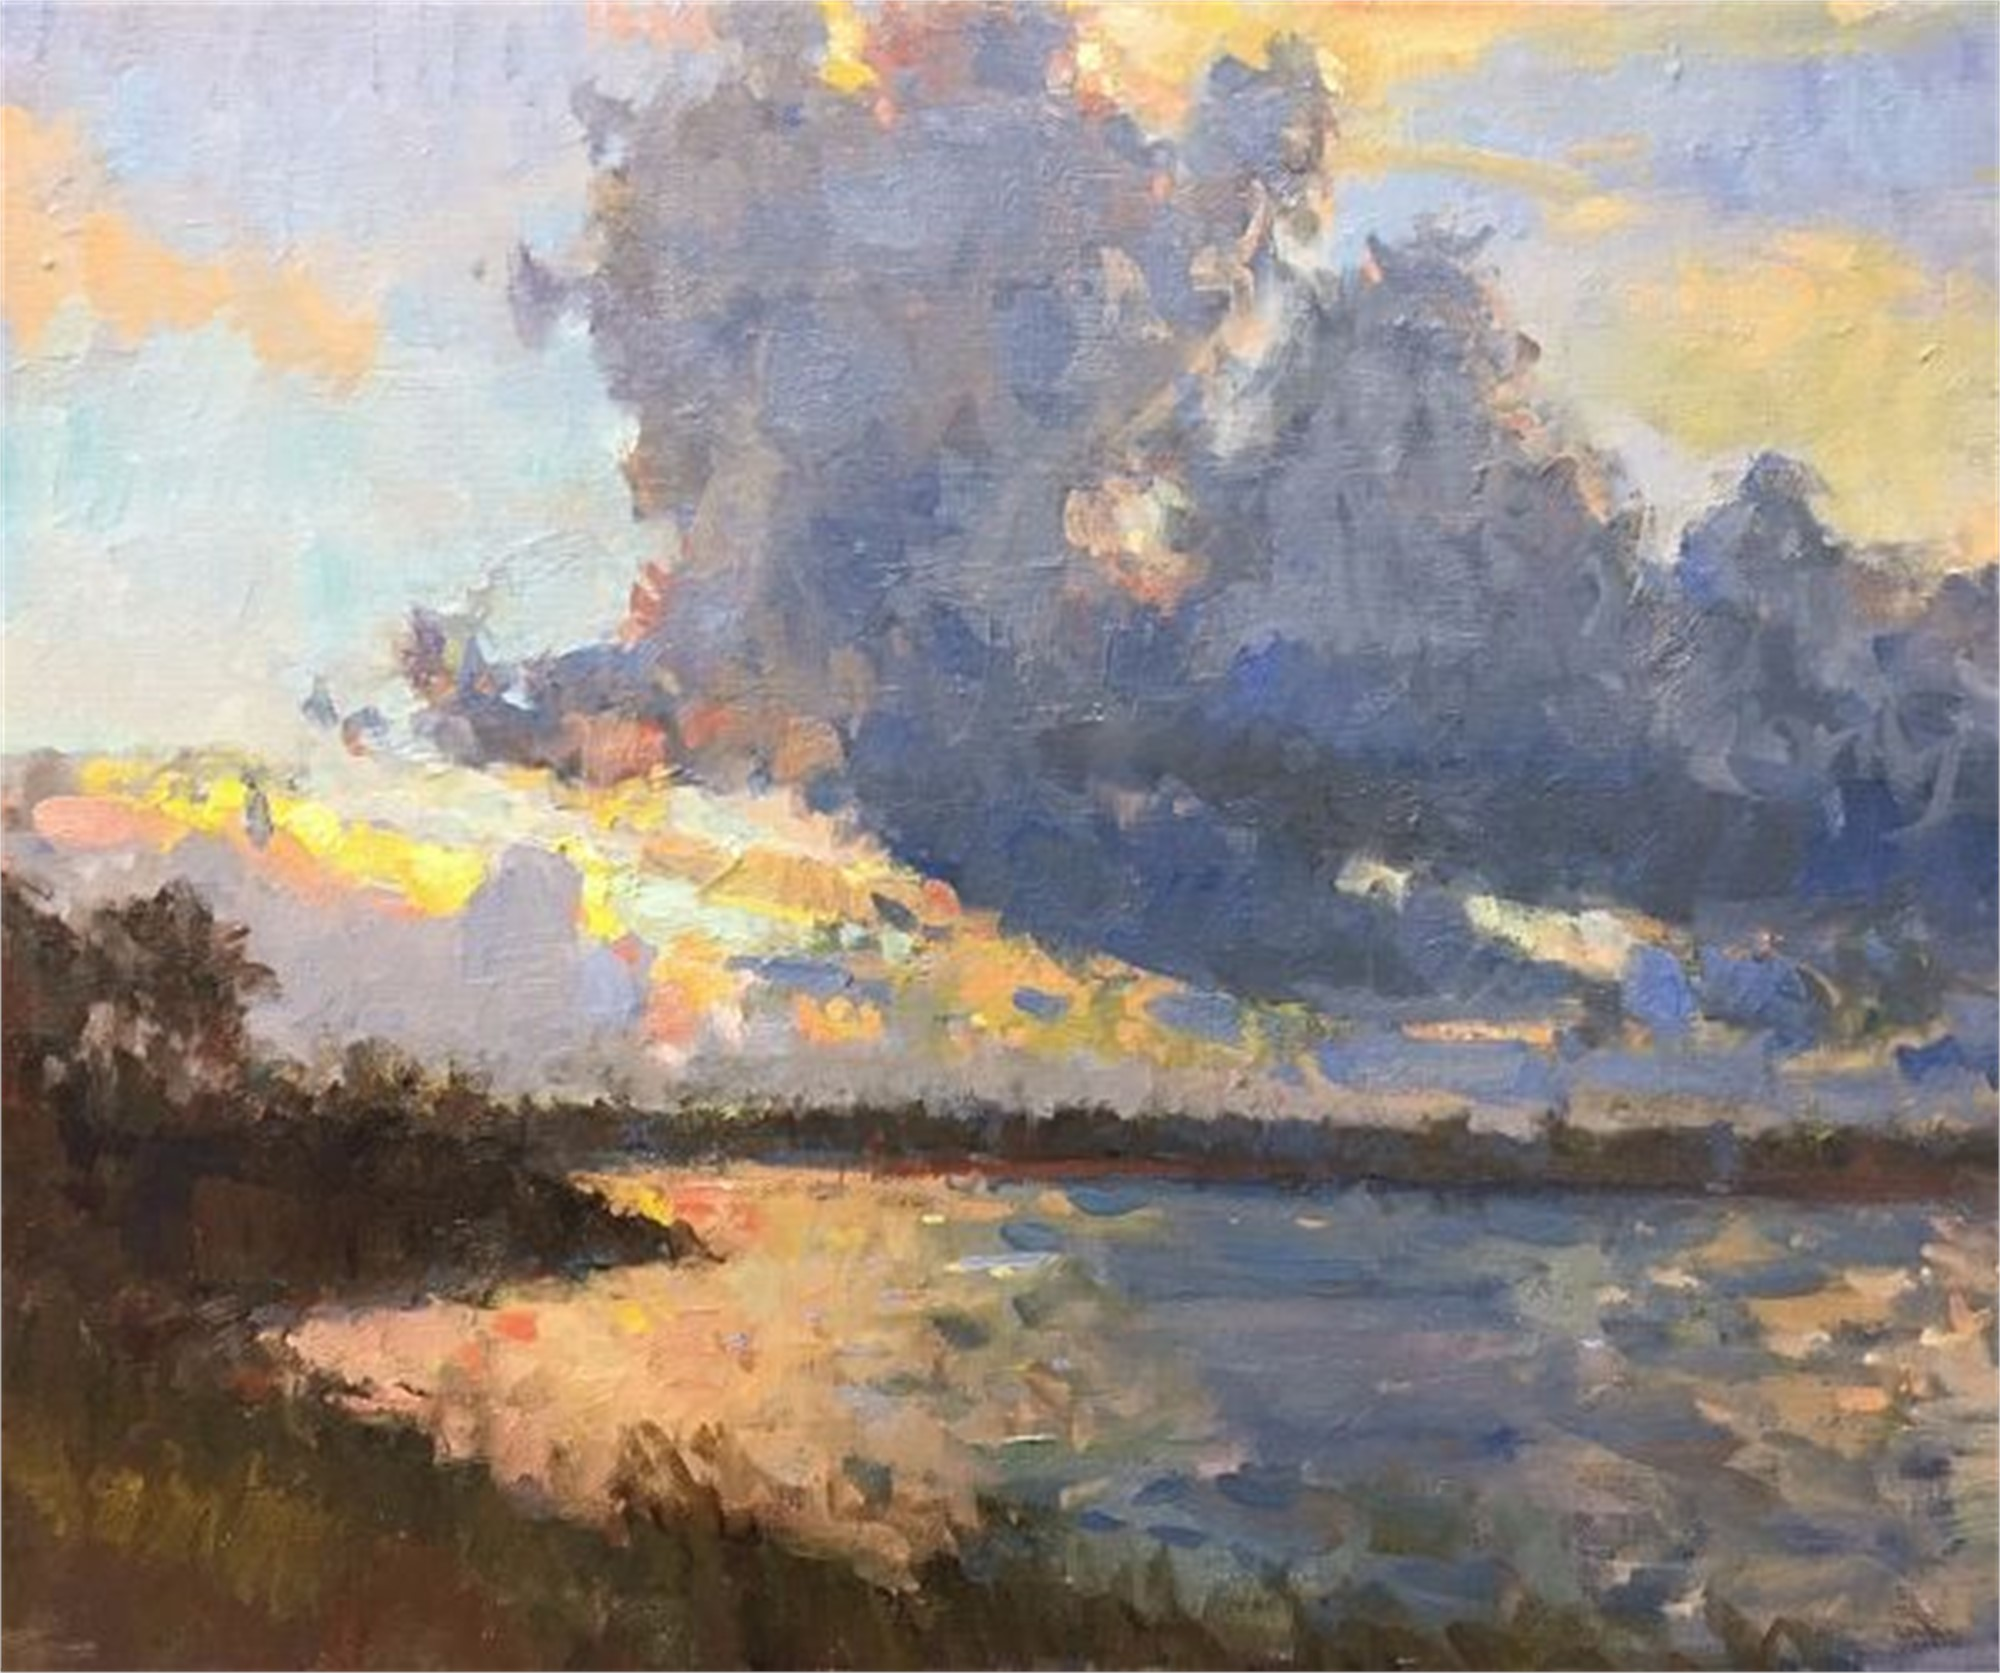 Passing Storm by Richard Oversmith